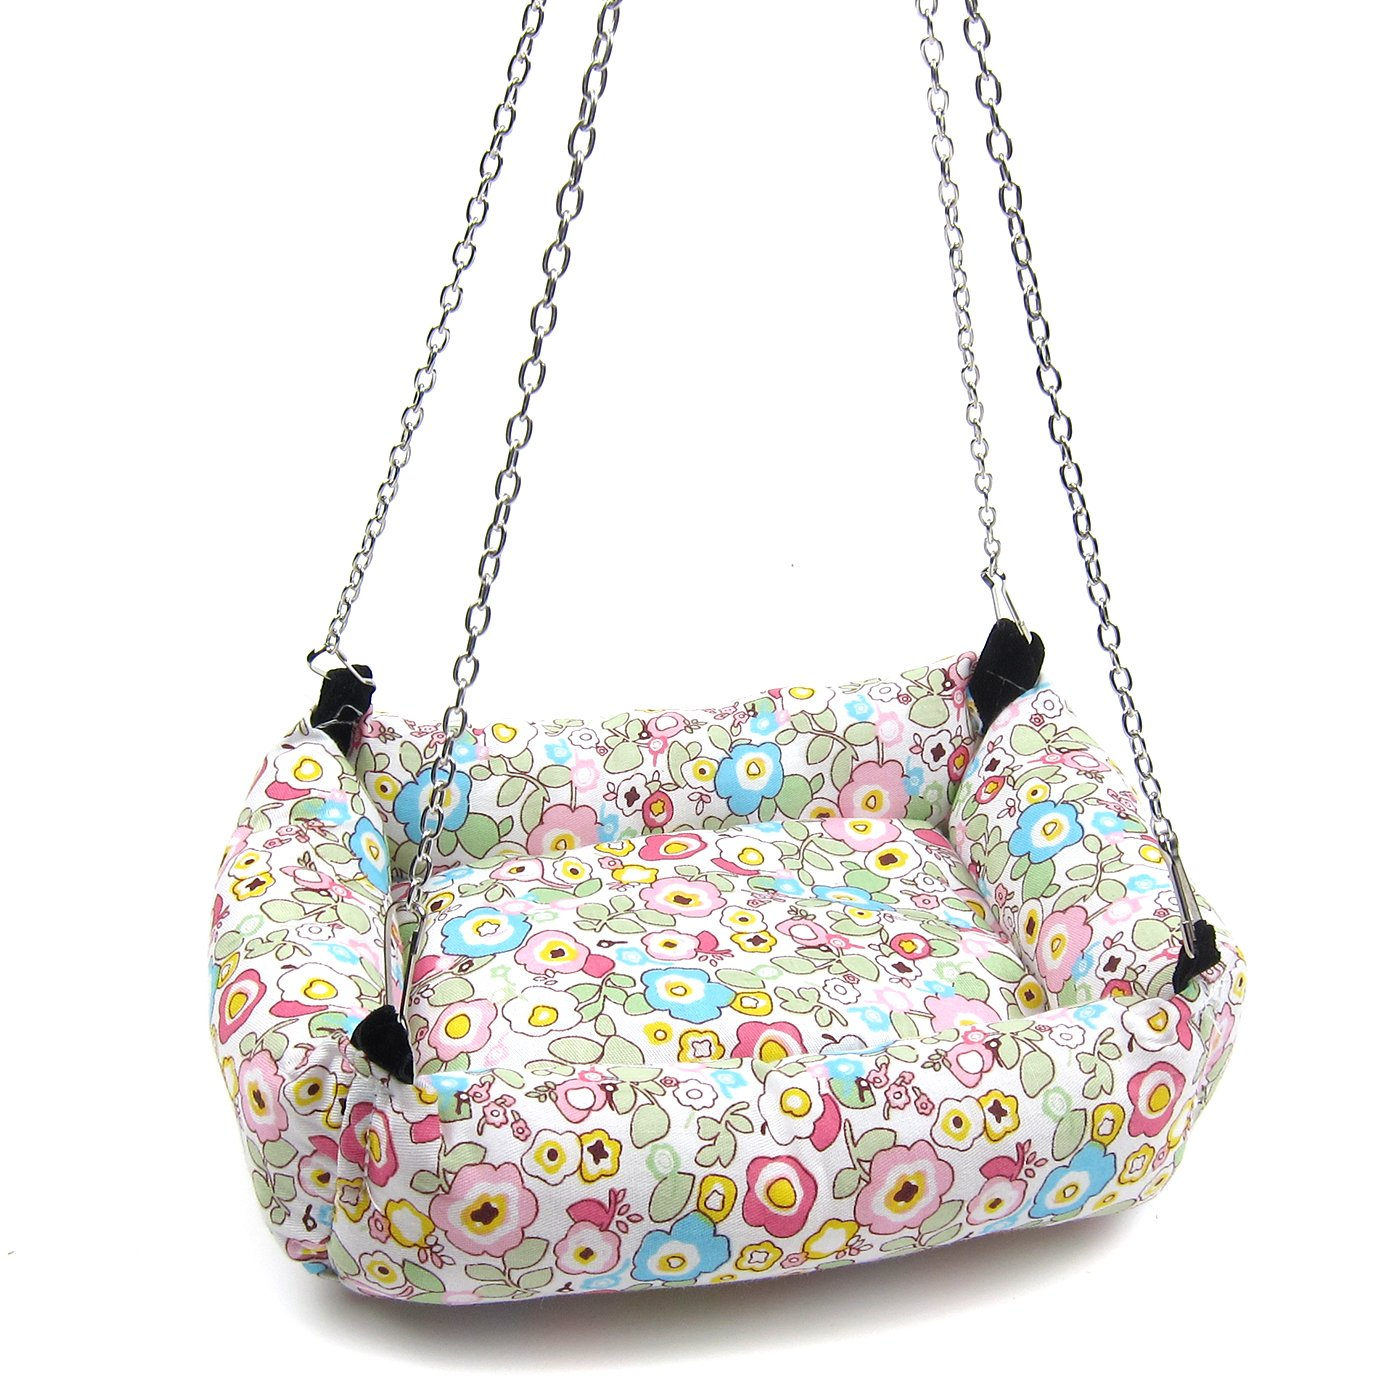 Alfie Pet by Petoga Couture - Ariel Hanging Bed for Small Animals like Dwarf Hamster and Mouse - Design: Flower, Size: Large by Alfie (Image #1)